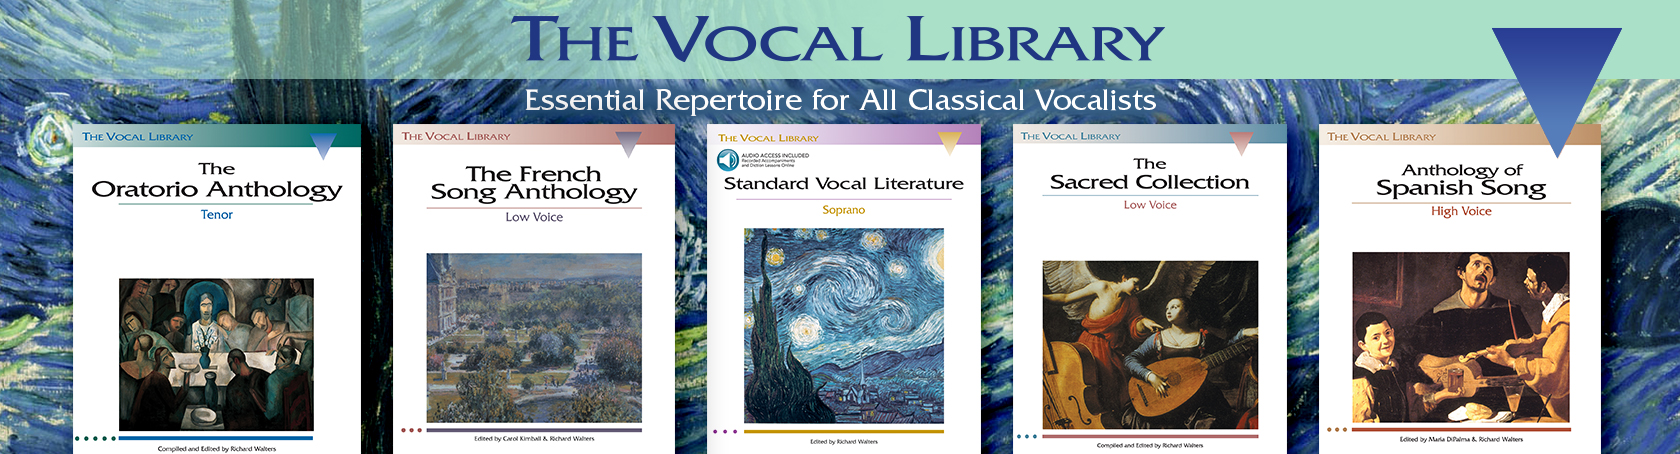 The Vocal Library